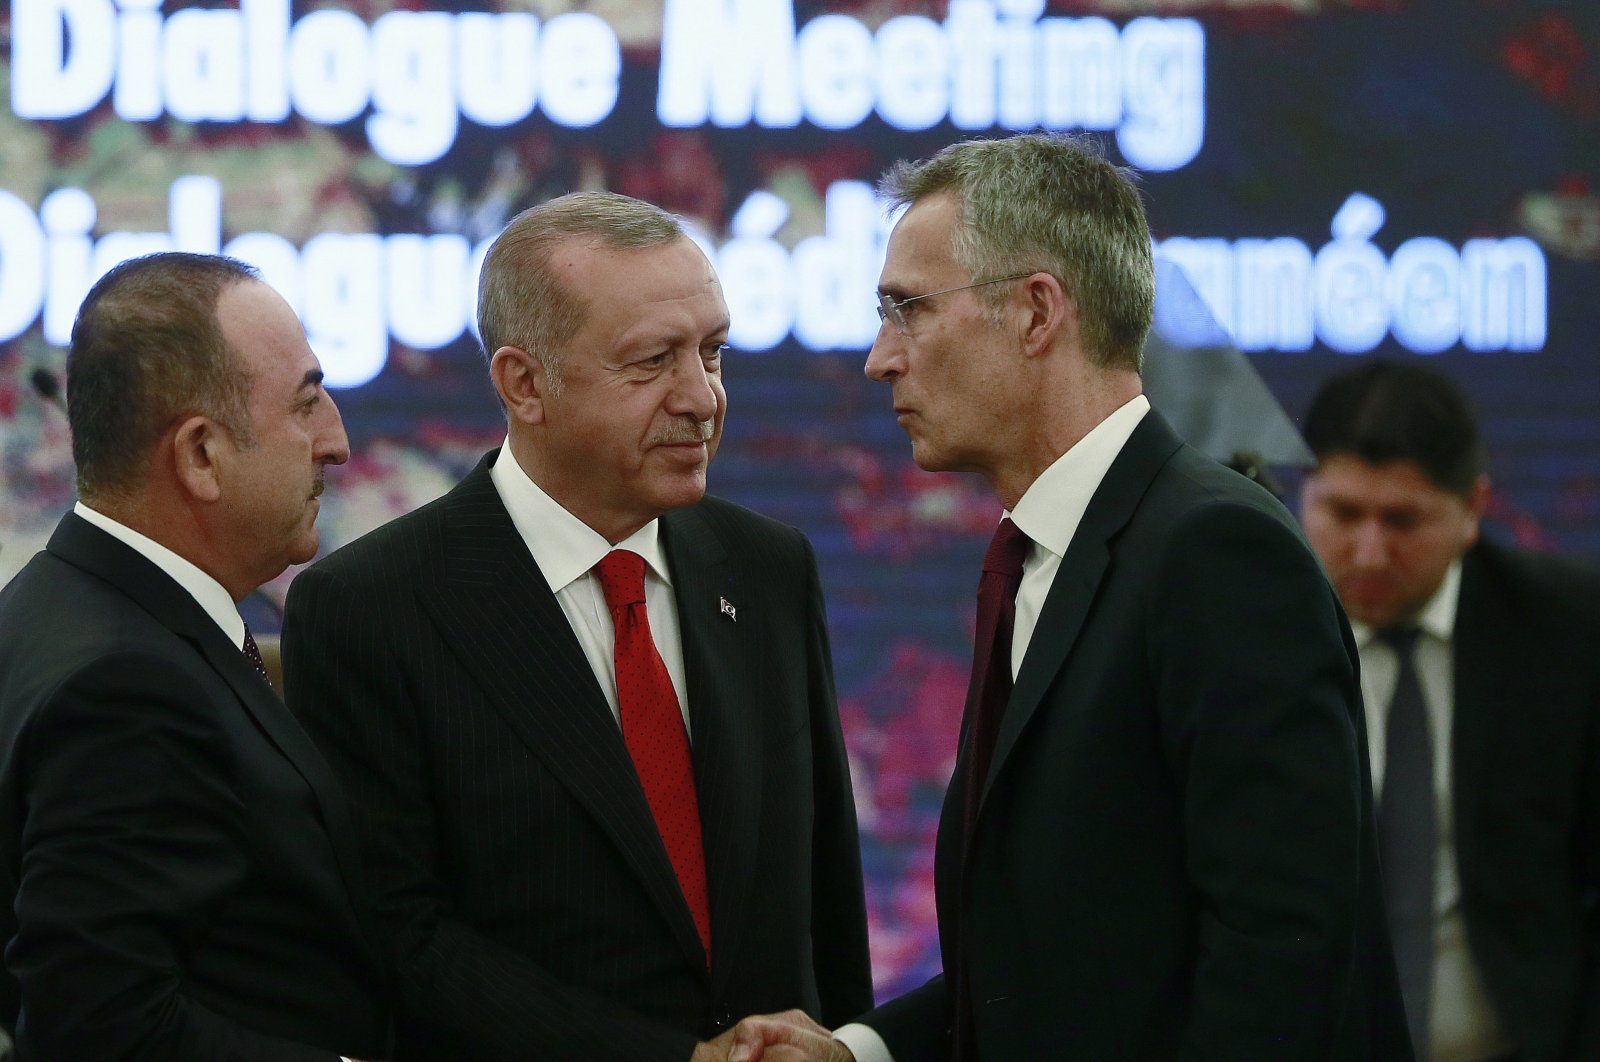 President Recep Tayyip Erdoğan (C) and Foreign Minister Mevlüt Çavuşogğu (L) speak with NATO Secretary General Jens Stoltenberg during a meeting of NATO's Mediterranean dialogue, Ankara, May 6, 2019. (AP Photo)